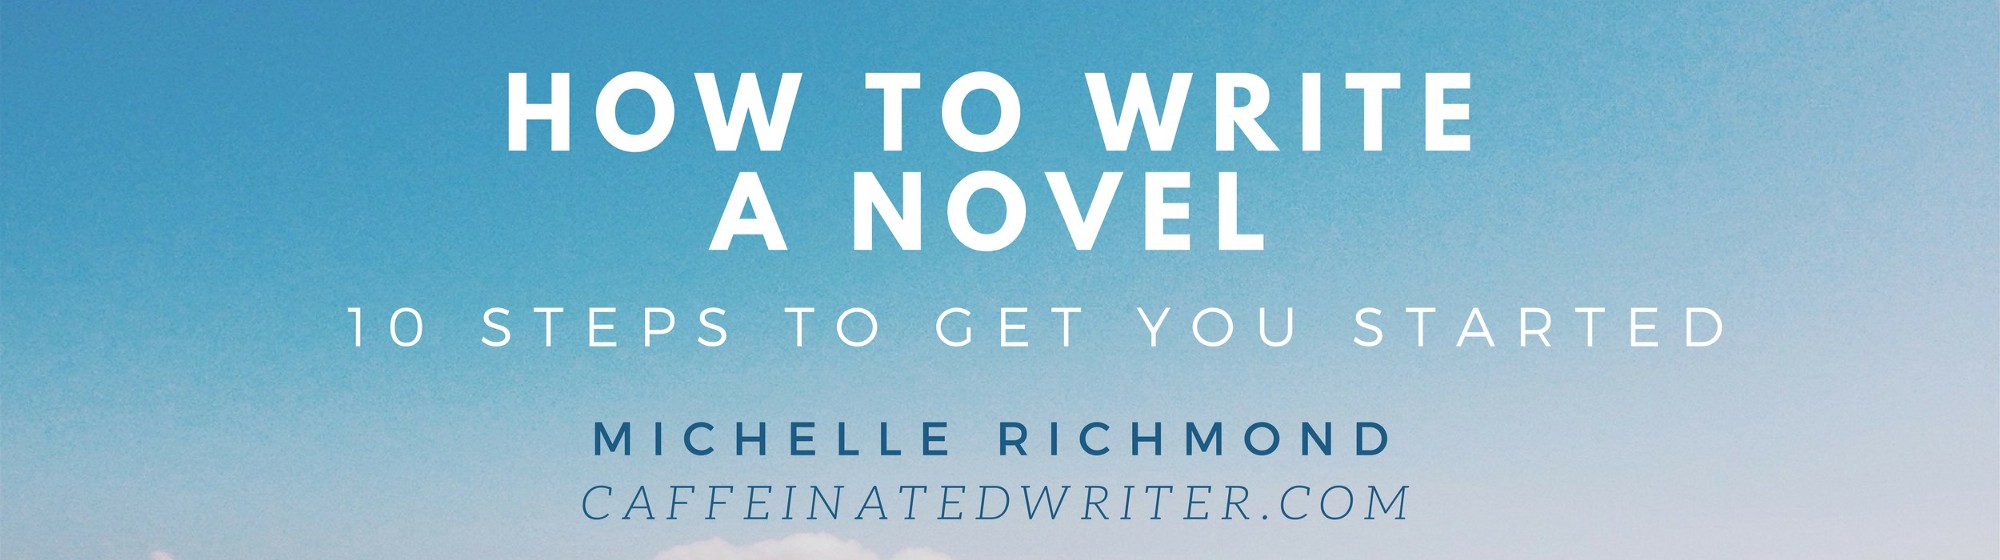 How to write a novel 51